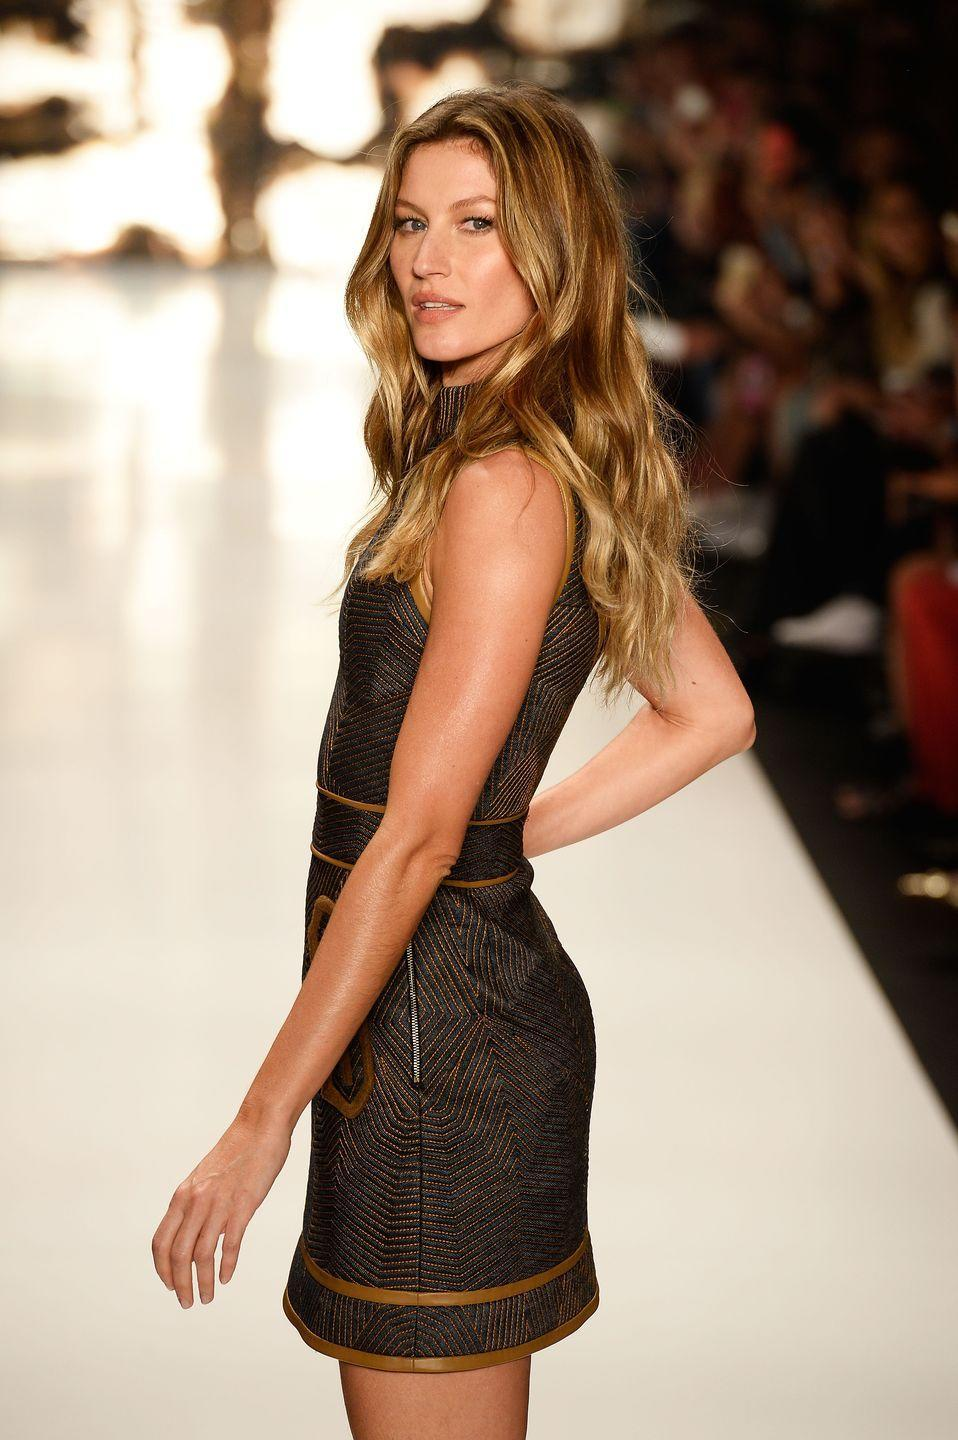 "<p><em>Forbes</em>'s longtime highest-paid model in the world was discovered while shopping in São Paolo, Brazil, <em><a href=""http://www.independent.co.uk/life-style/fashion/features/gisele-bndchen-business-model--it-takes-more-than-just-good-looks-to-get-to-the-top-8782676.html"" rel=""nofollow noopener"" target=""_blank"" data-ylk=""slk:The Independent"" class=""link rapid-noclick-resp"">The Independent</a> </em>reported<em>. </em>After walking her first runway at the age of 14, Bündchen went on to become the breakout supermodel of the late '90s and early 2000s, after making her big break at Alexander McQueen's spring 1998 show. </p><p>She has since dabbled in acting, appearing in movies like <em>The Devil Wears Prada</em> and <em>Taxi</em><em>,</em> and most recently wrote a memoir, <em><a href=""https://www.amazon.com/dp/052553864X/?tag=syn-yahoo-20&ascsubtag=%5Bartid%7C10049.g.35319849%5Bsrc%7Cyahoo-us"" rel=""nofollow noopener"" target=""_blank"" data-ylk=""slk:Lessons: My Path to a Meaningful Life"" class=""link rapid-noclick-resp"">Lessons: My Path to a Meaningful Life</a>.</em><br></p>"